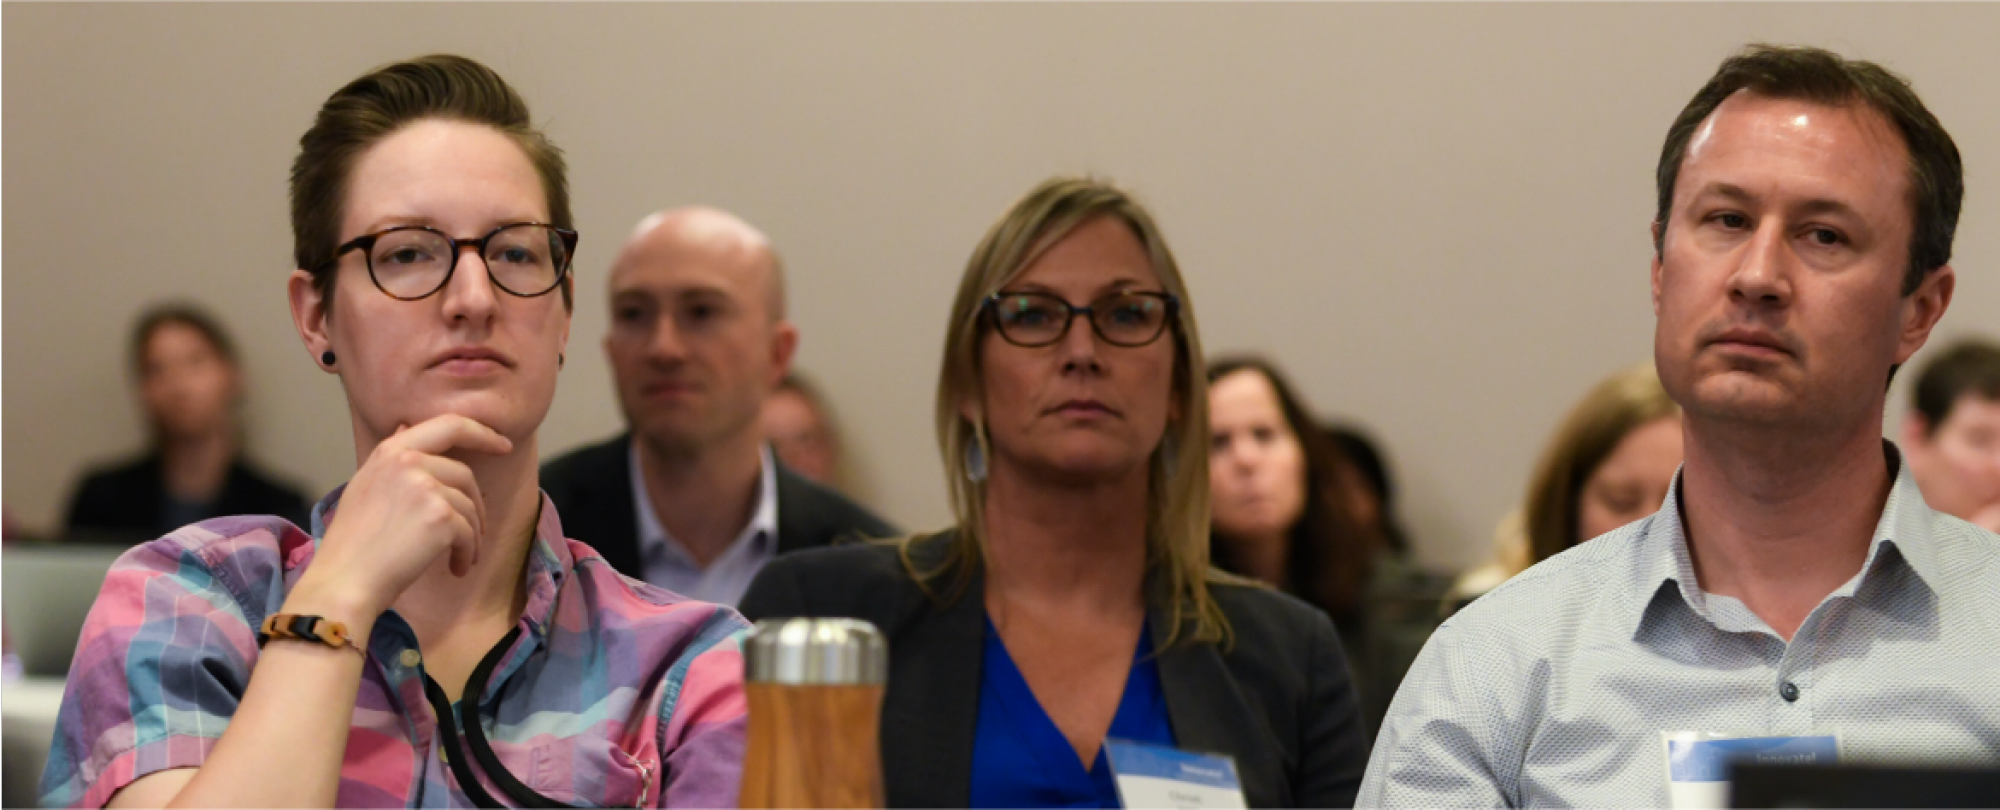 Attendees listening intently at one of the 2019 Denver Housing Forum sessions